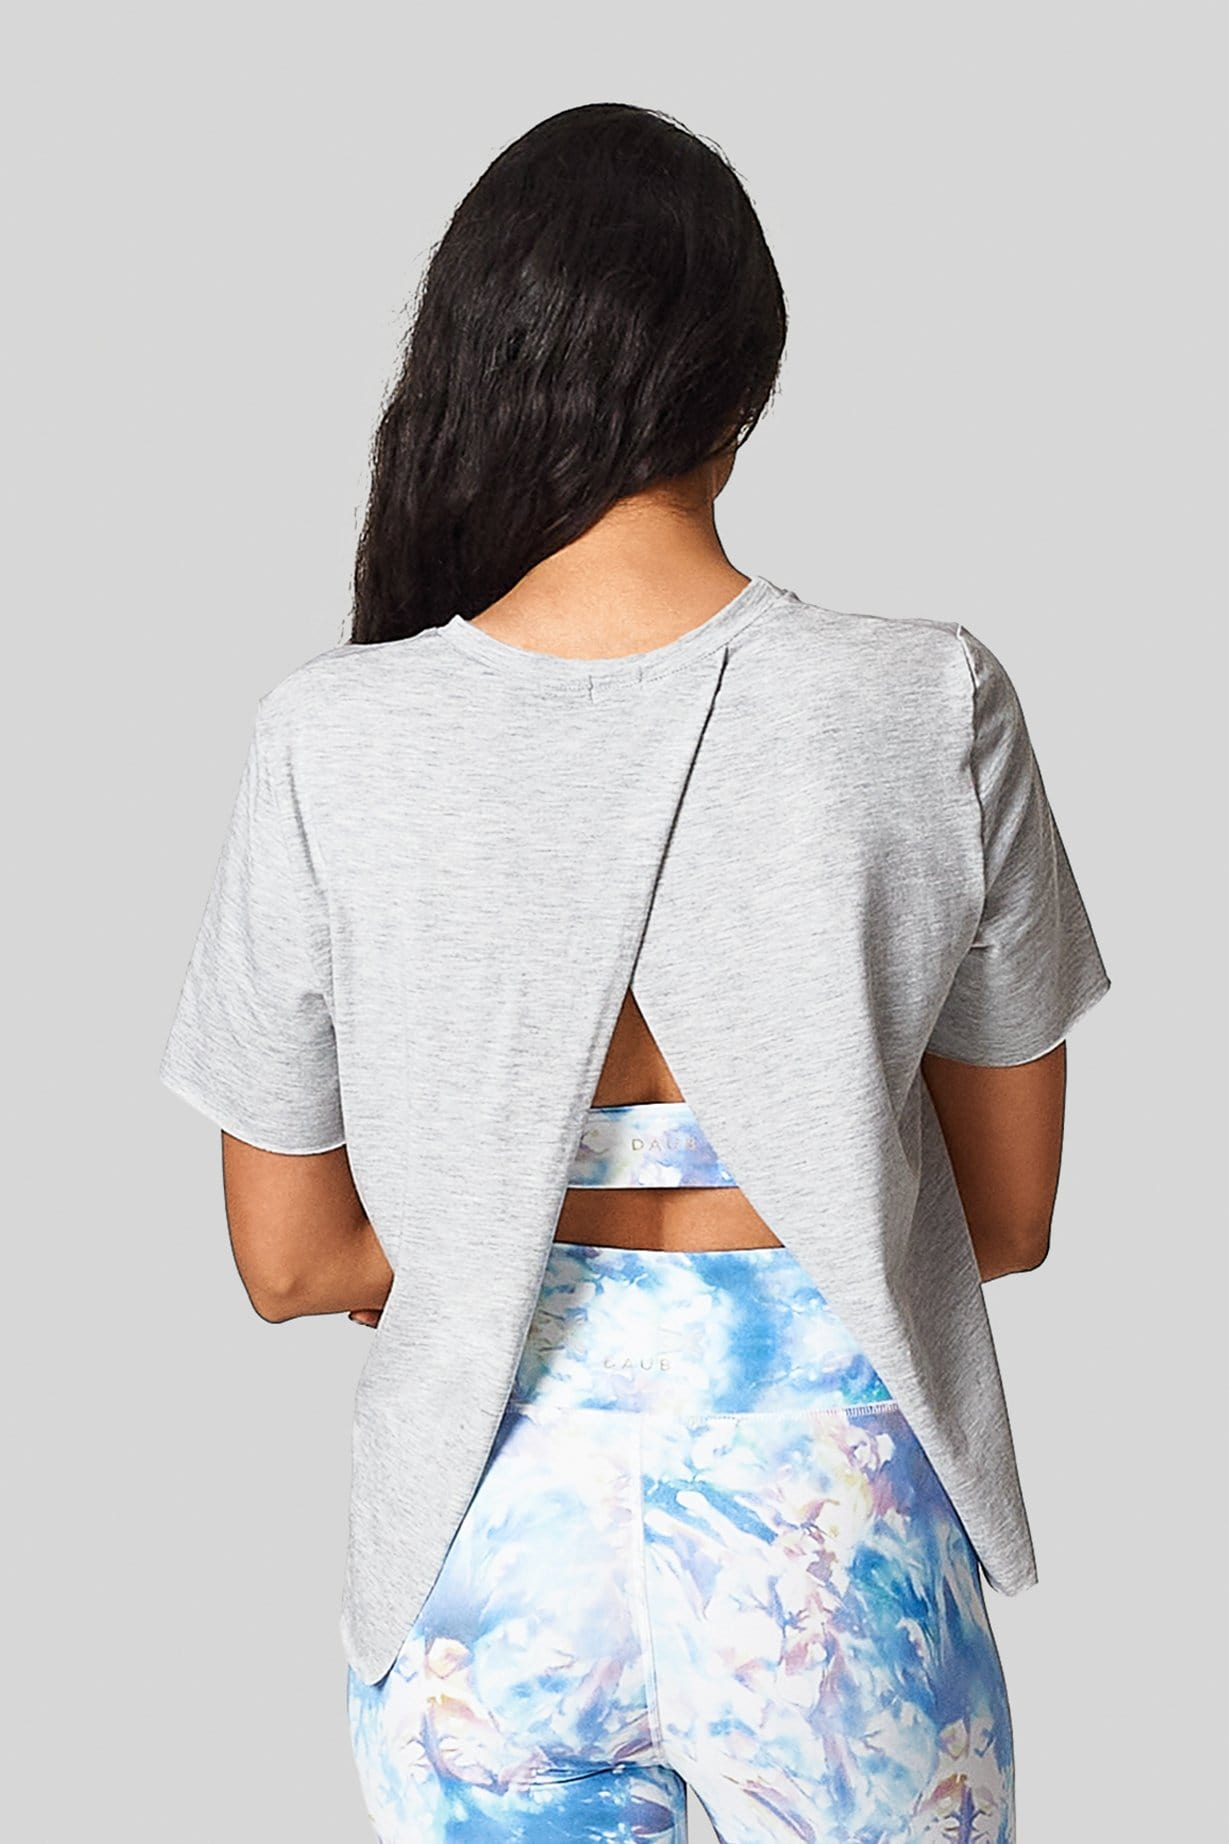 A woman wears a light heather grey t-shirt with an diagonal open back and tie-dyed sports bra and leggings.